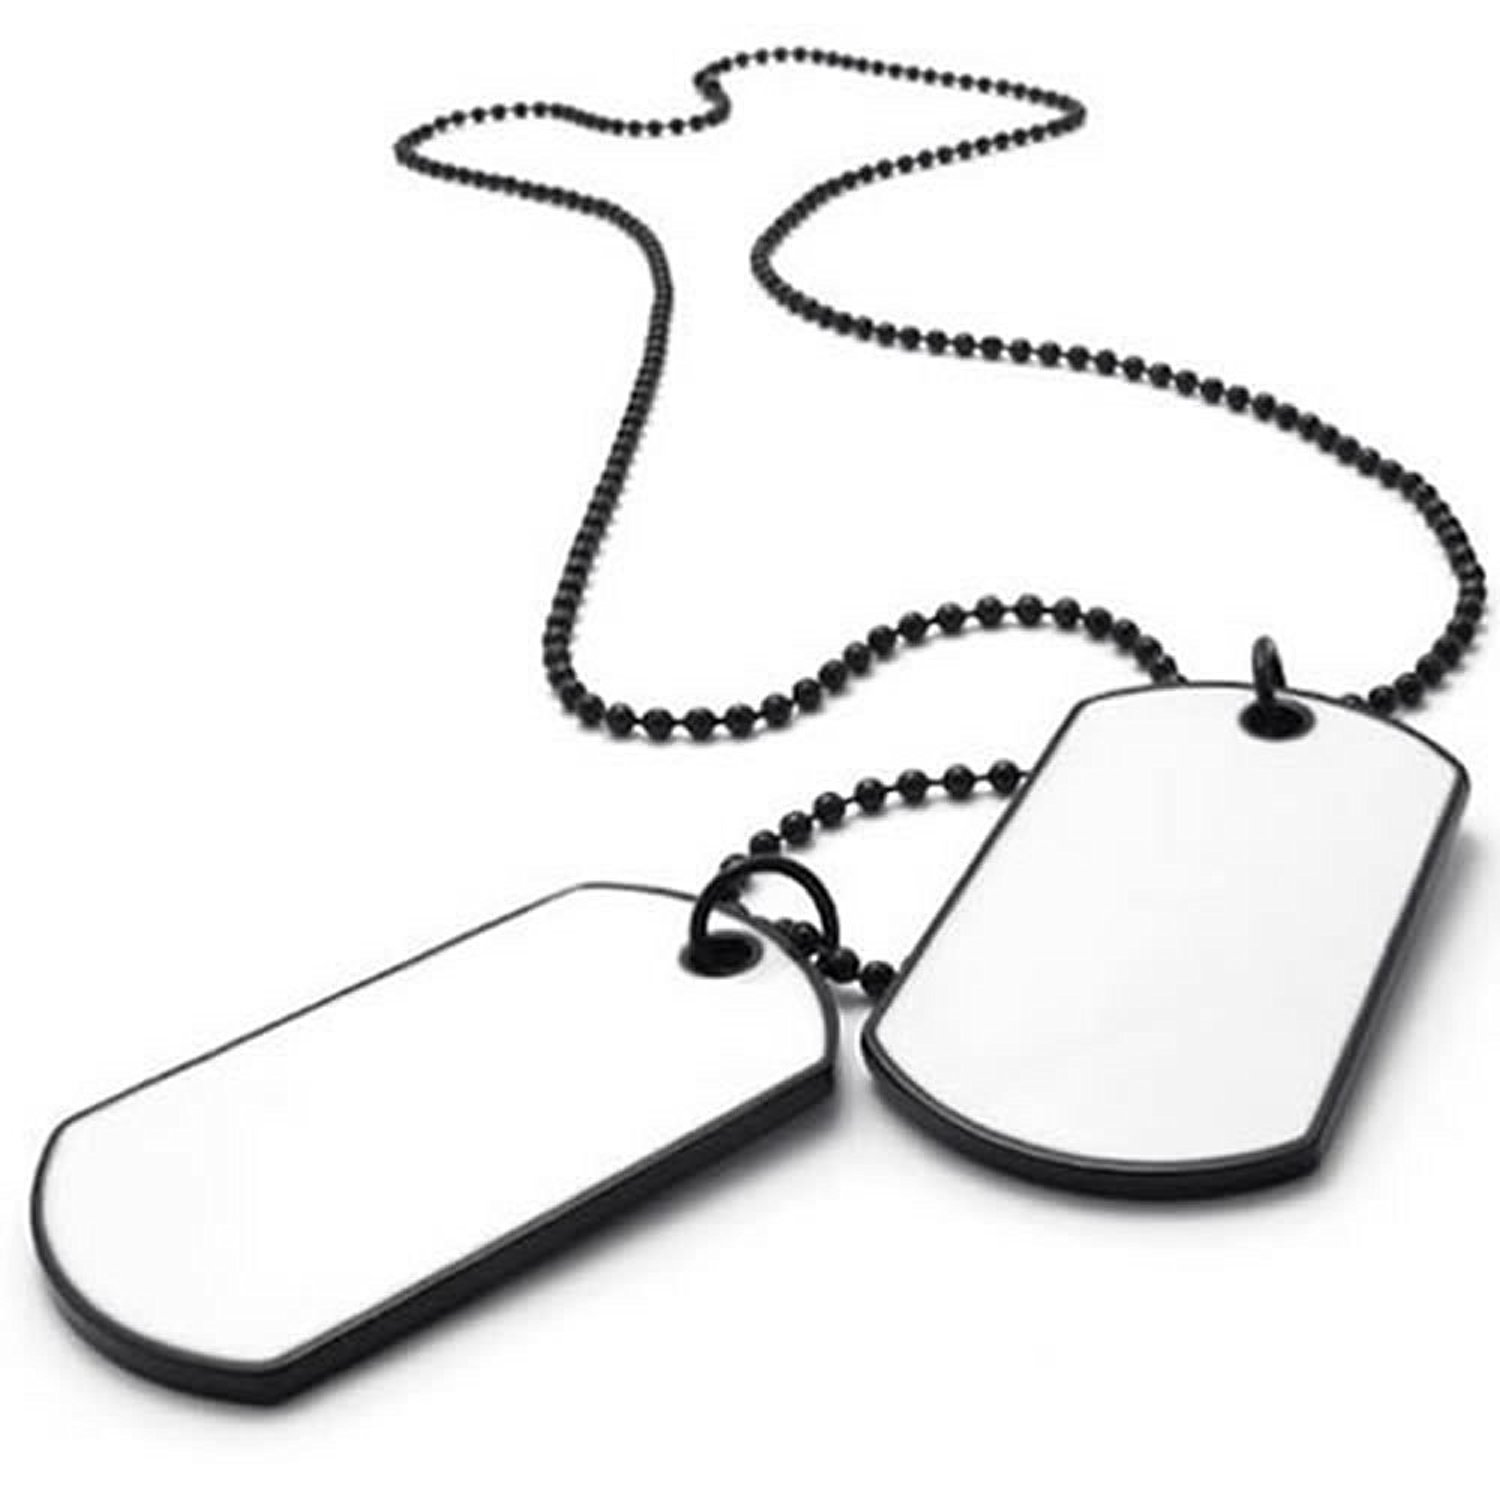 Dog Tags Drawing At Getdrawings Com Free For Personal